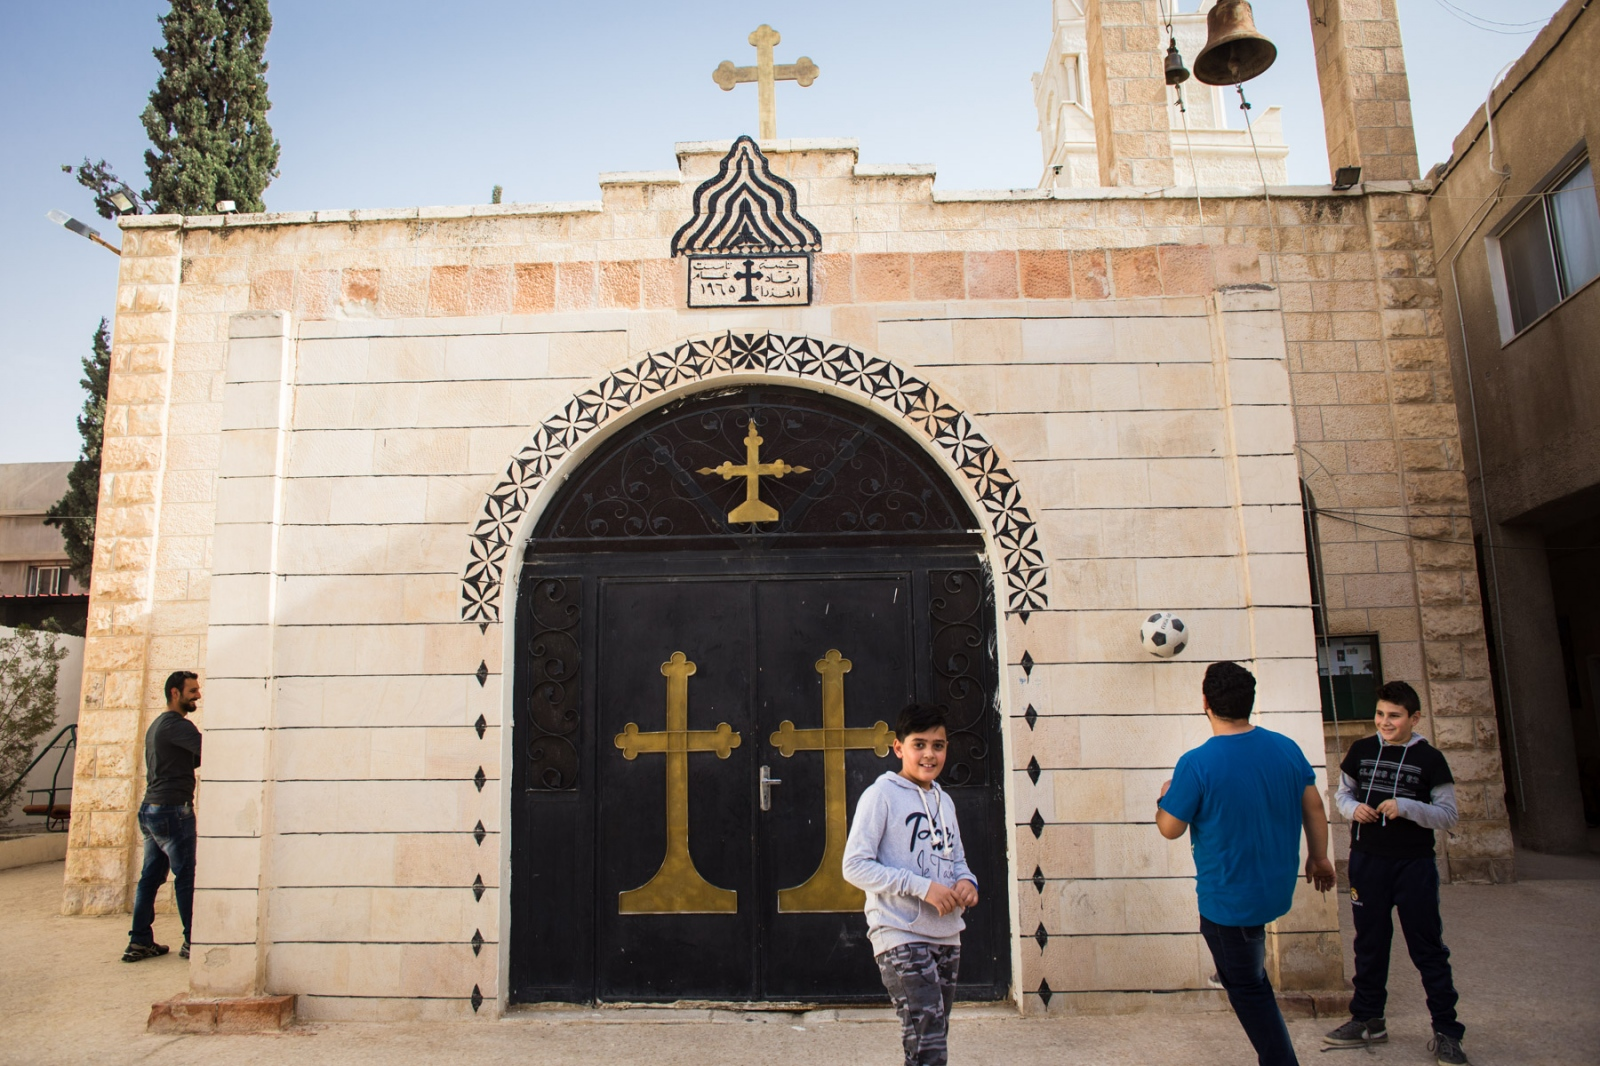 Jordanian Christian youth play outside the Orthodox church in Mafraq, near the Syrian border. The town has boomed from rougly 70,000 original inhabitants to nearly half a million, with Zaatari refugee camp and the Syrian refugees living throughout the town. In summer 2016, Father Dimitrius Samawi decided to start educational programs for kids - including language, science and math - for Syrian children to attend. A mix of Muslim and Christian children attend the program, and the church also offers Bible study groups for the Christians who come.